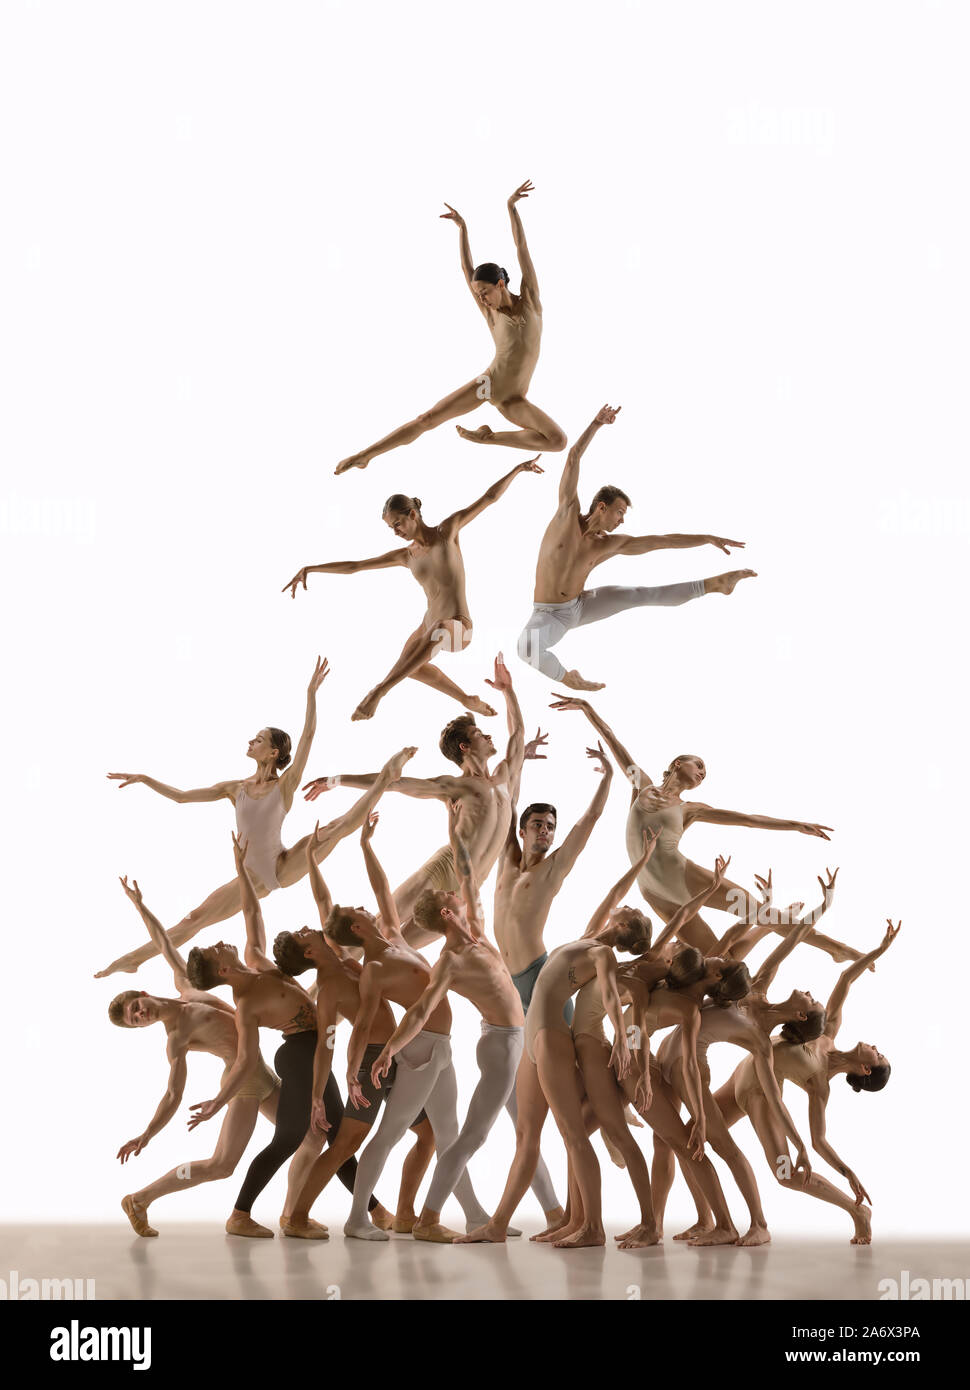 The group of modern ballet dancers. Contemporary art ballet. Young flexible  athletic men and women in tights. Negative space. Concept of dance grace,  inspiration, creativity. Made of shots of 11 models Stock